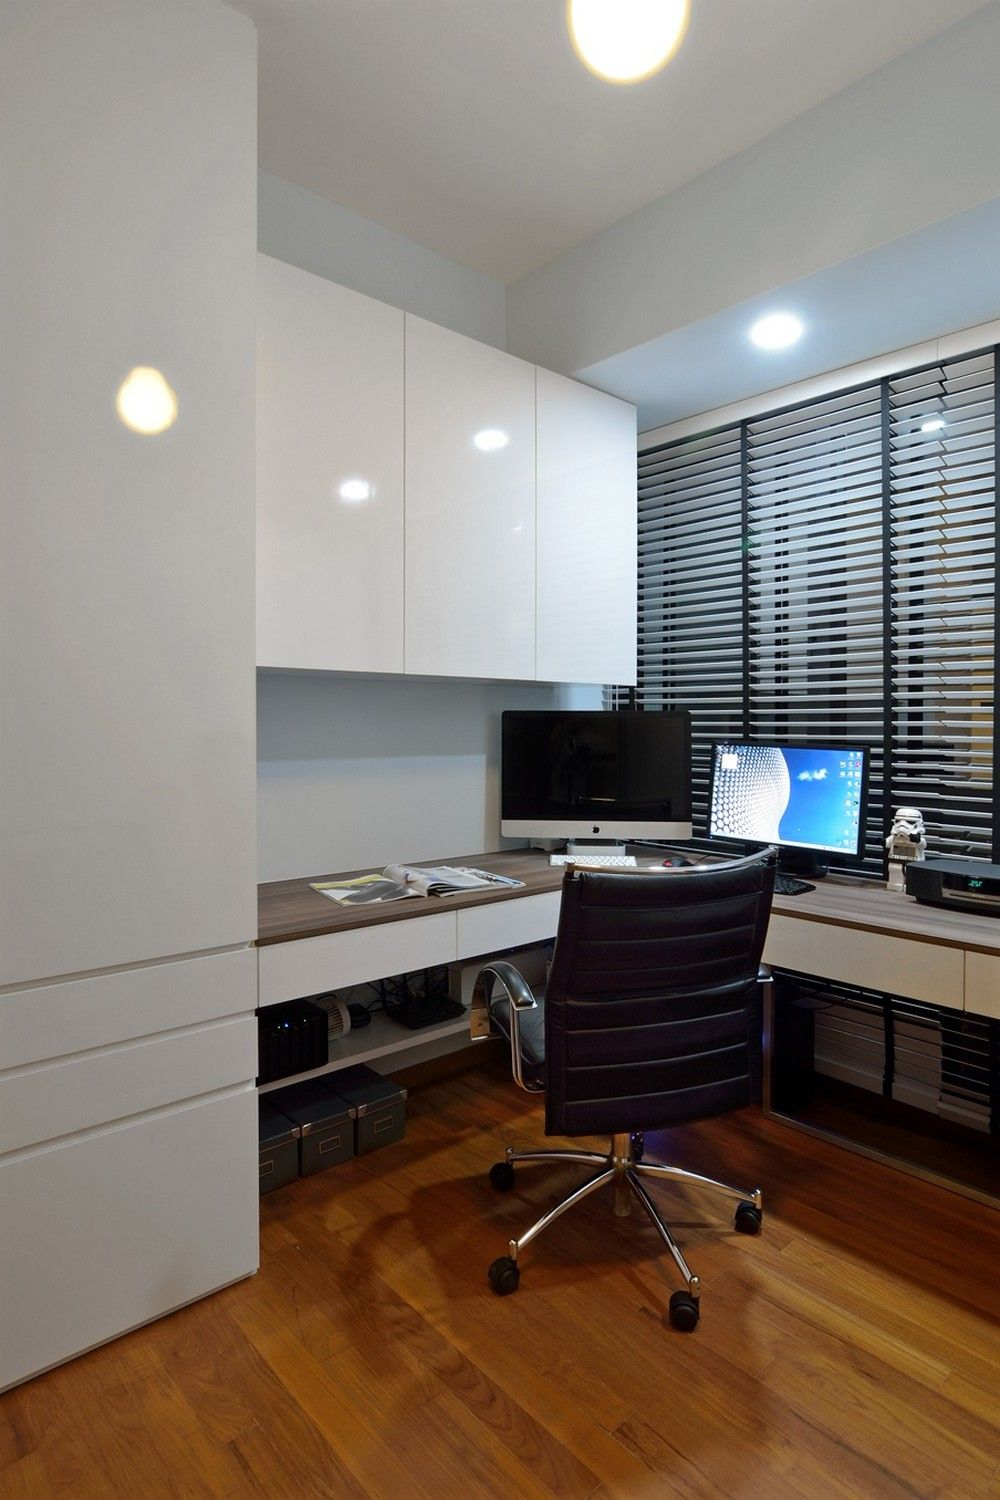 Singapore modern study room design google search for Room decor ideas singapore